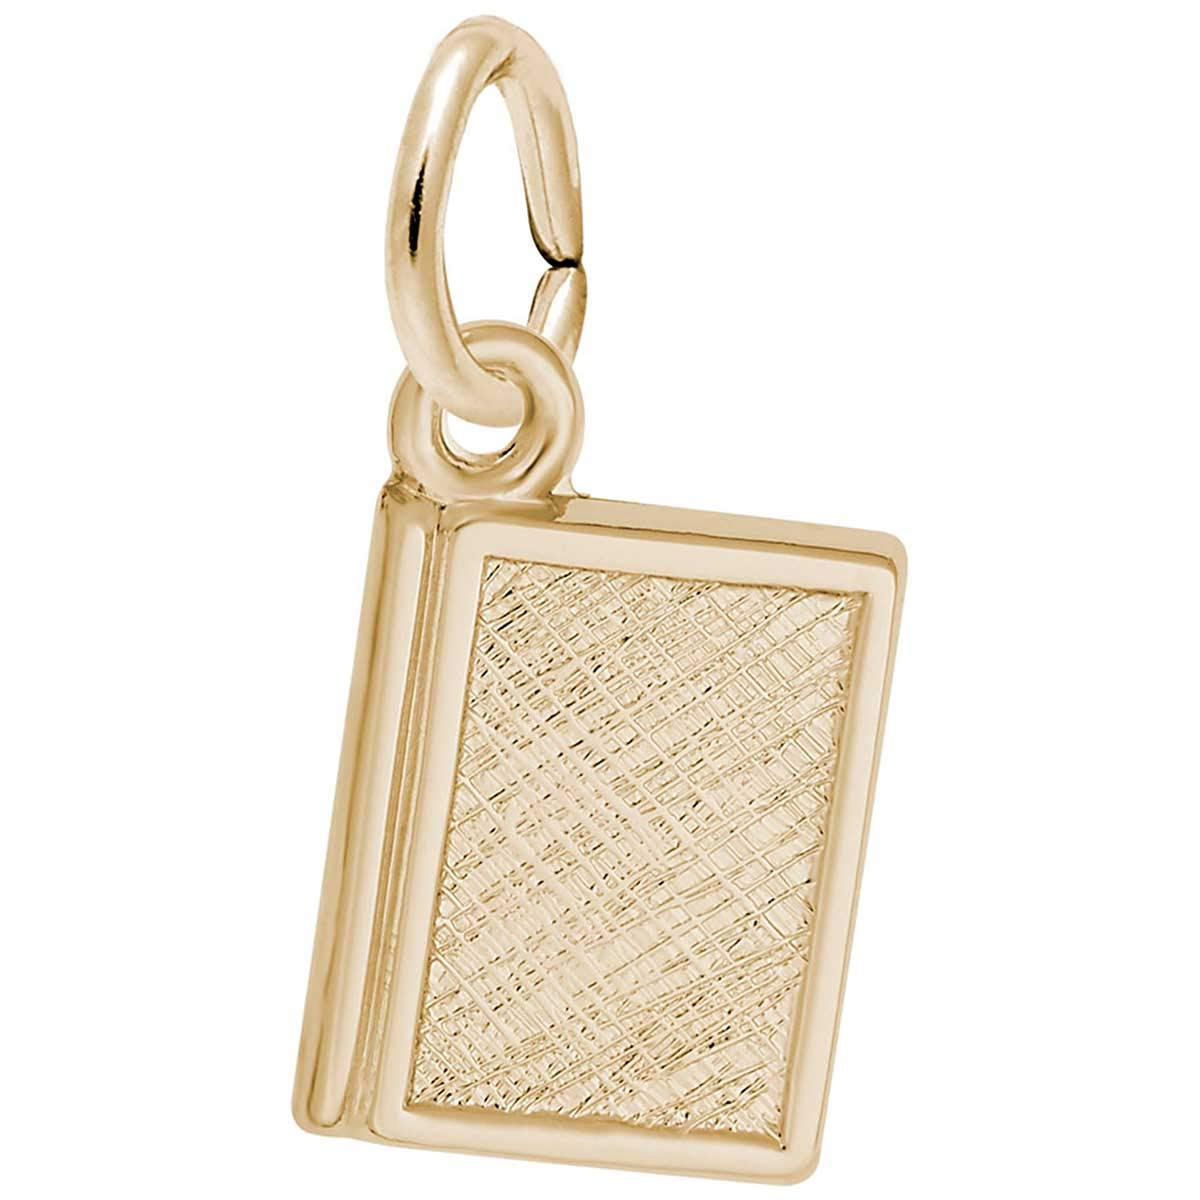 Rembrandt Charms Book Charm, 10K Yellow Gold